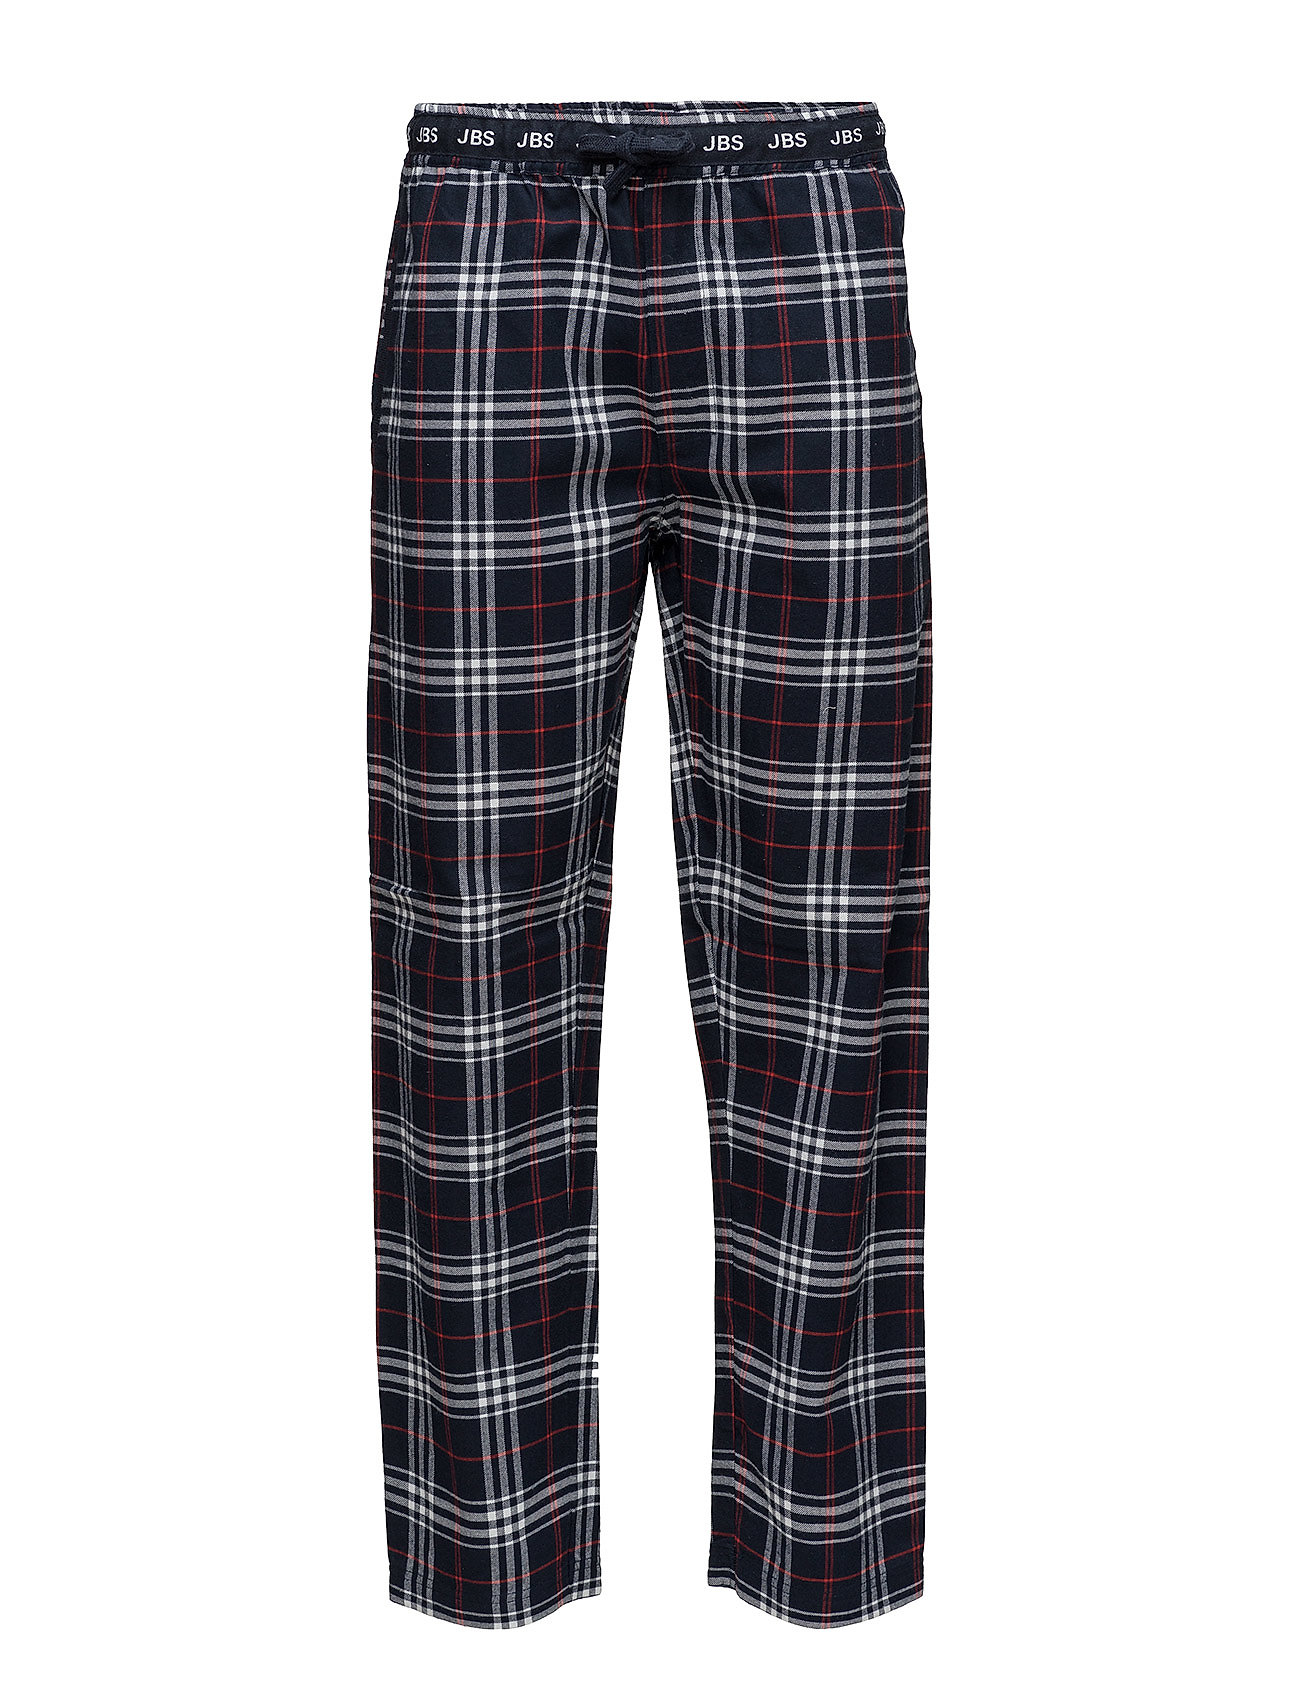 JBS JBS pajamas pants, flannel